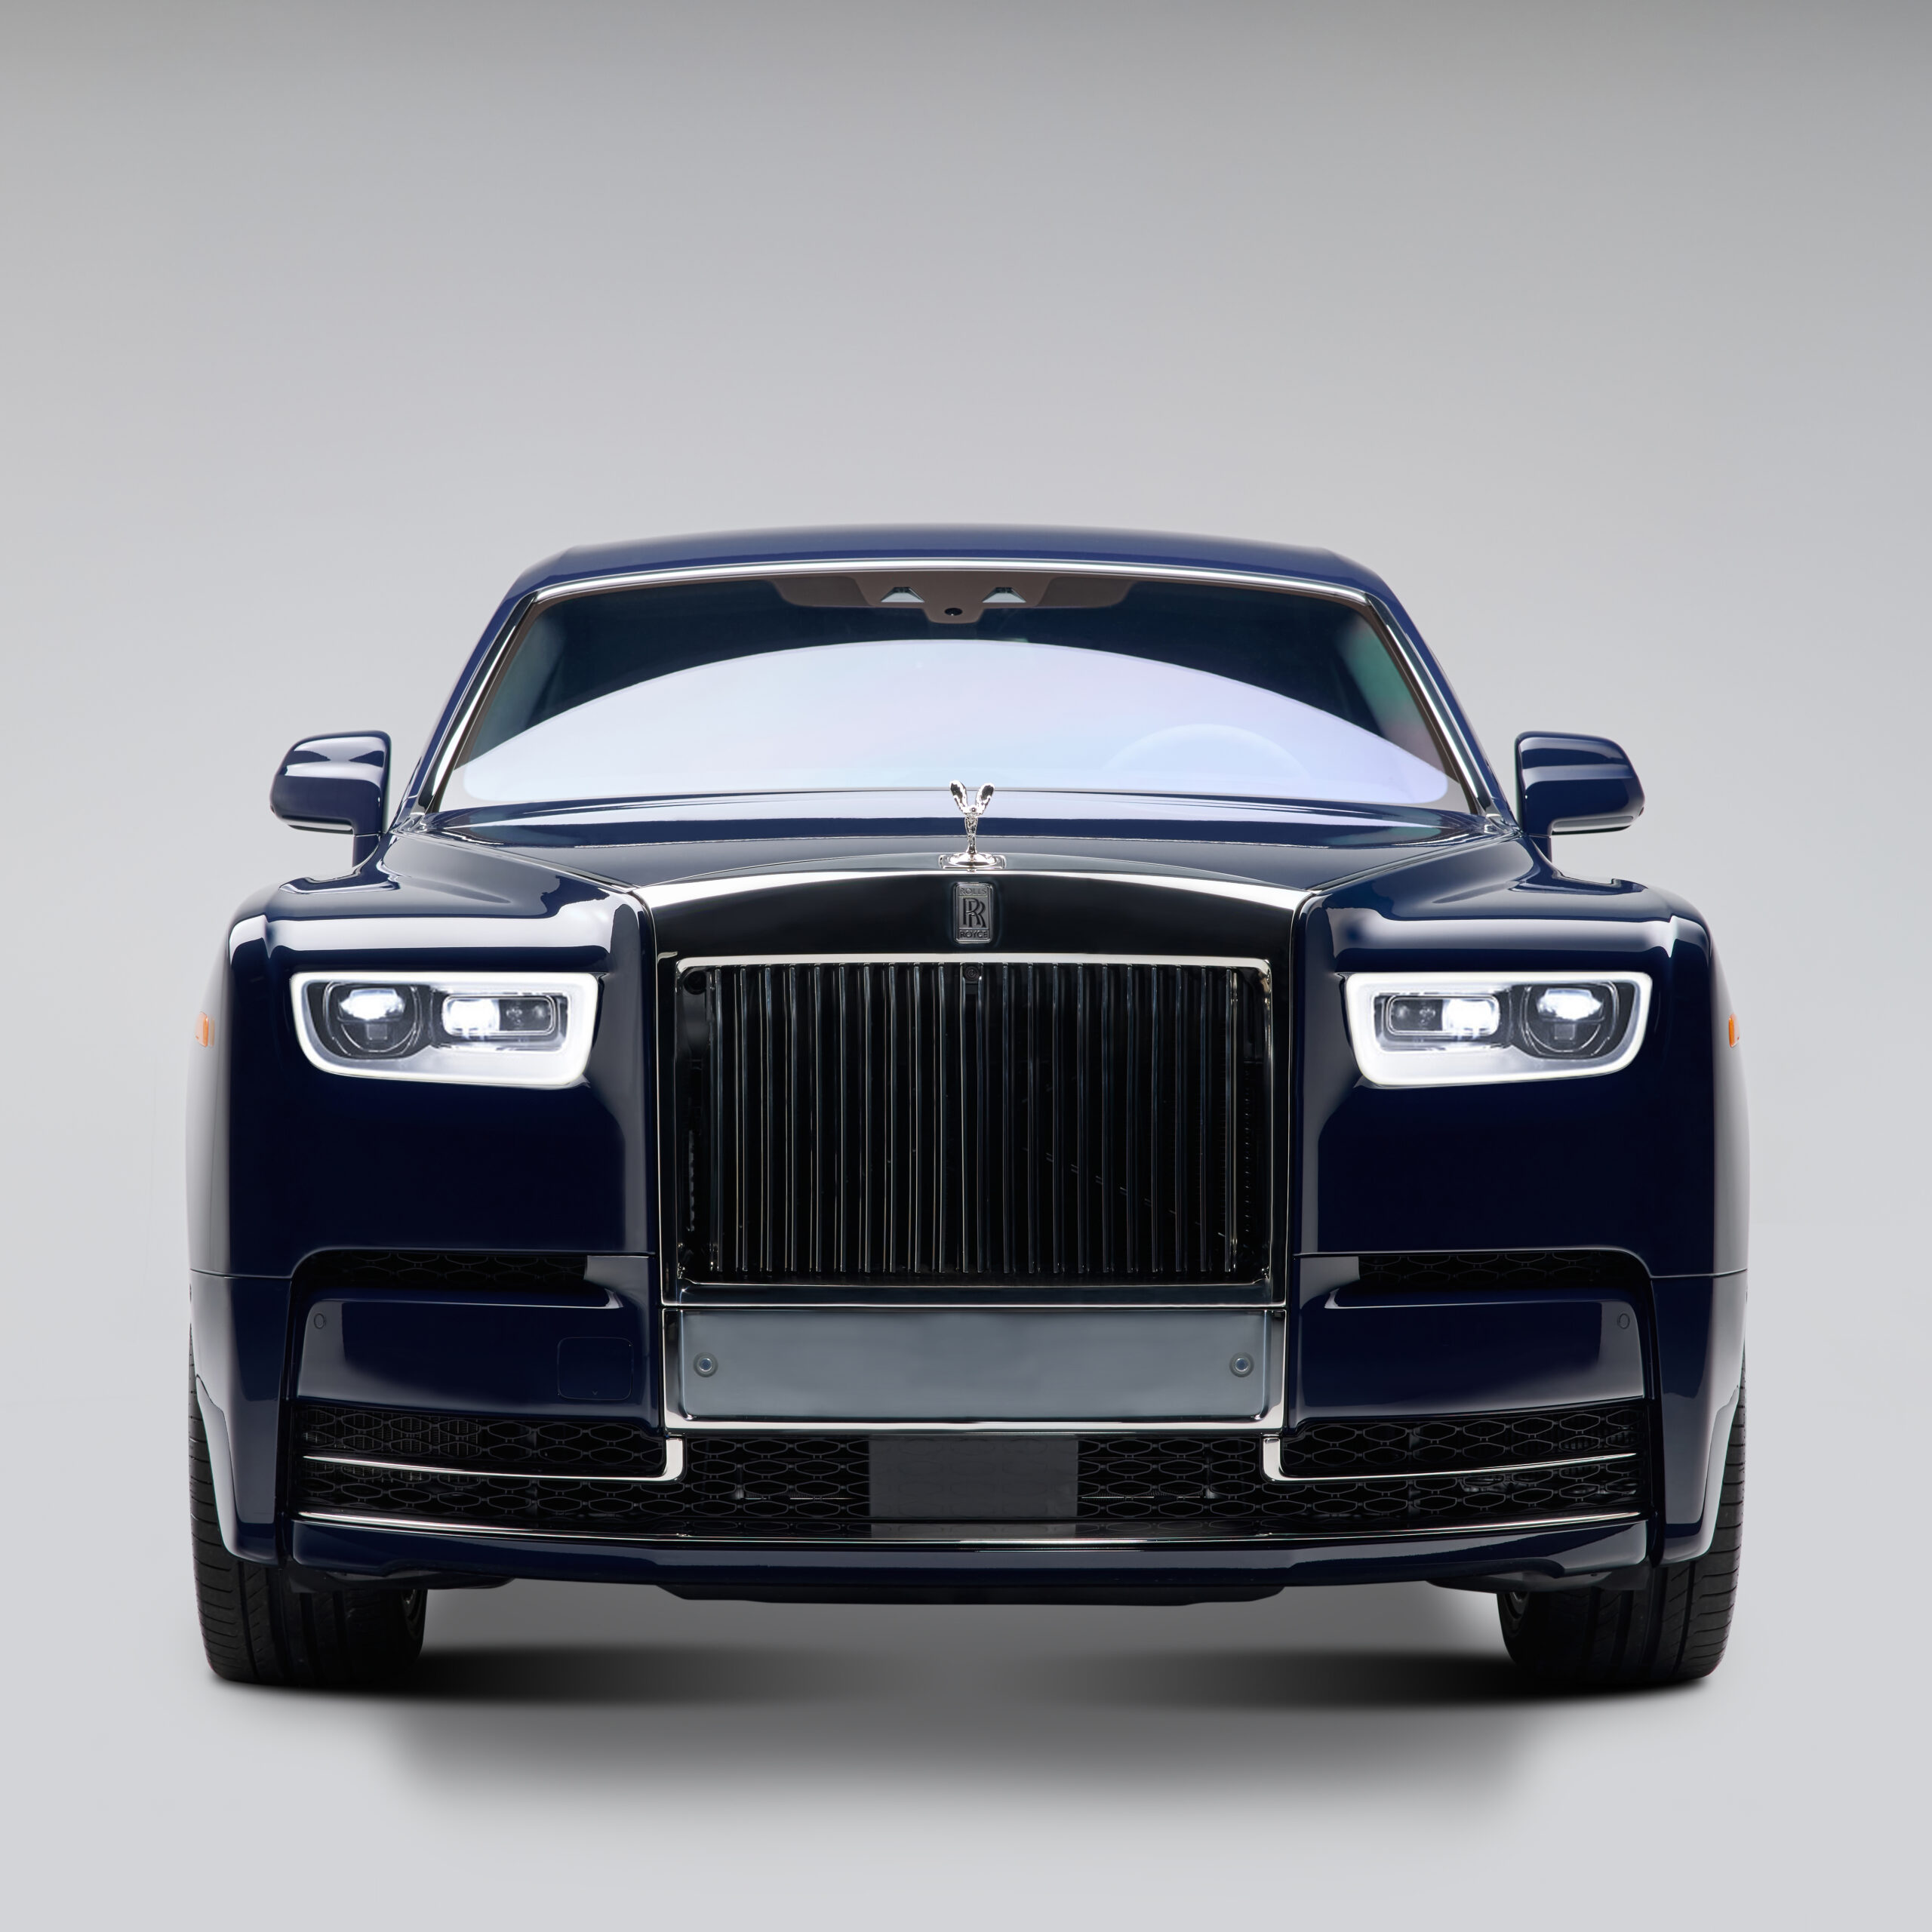 Rolls Royce KOA Phantom for 360 Magazine